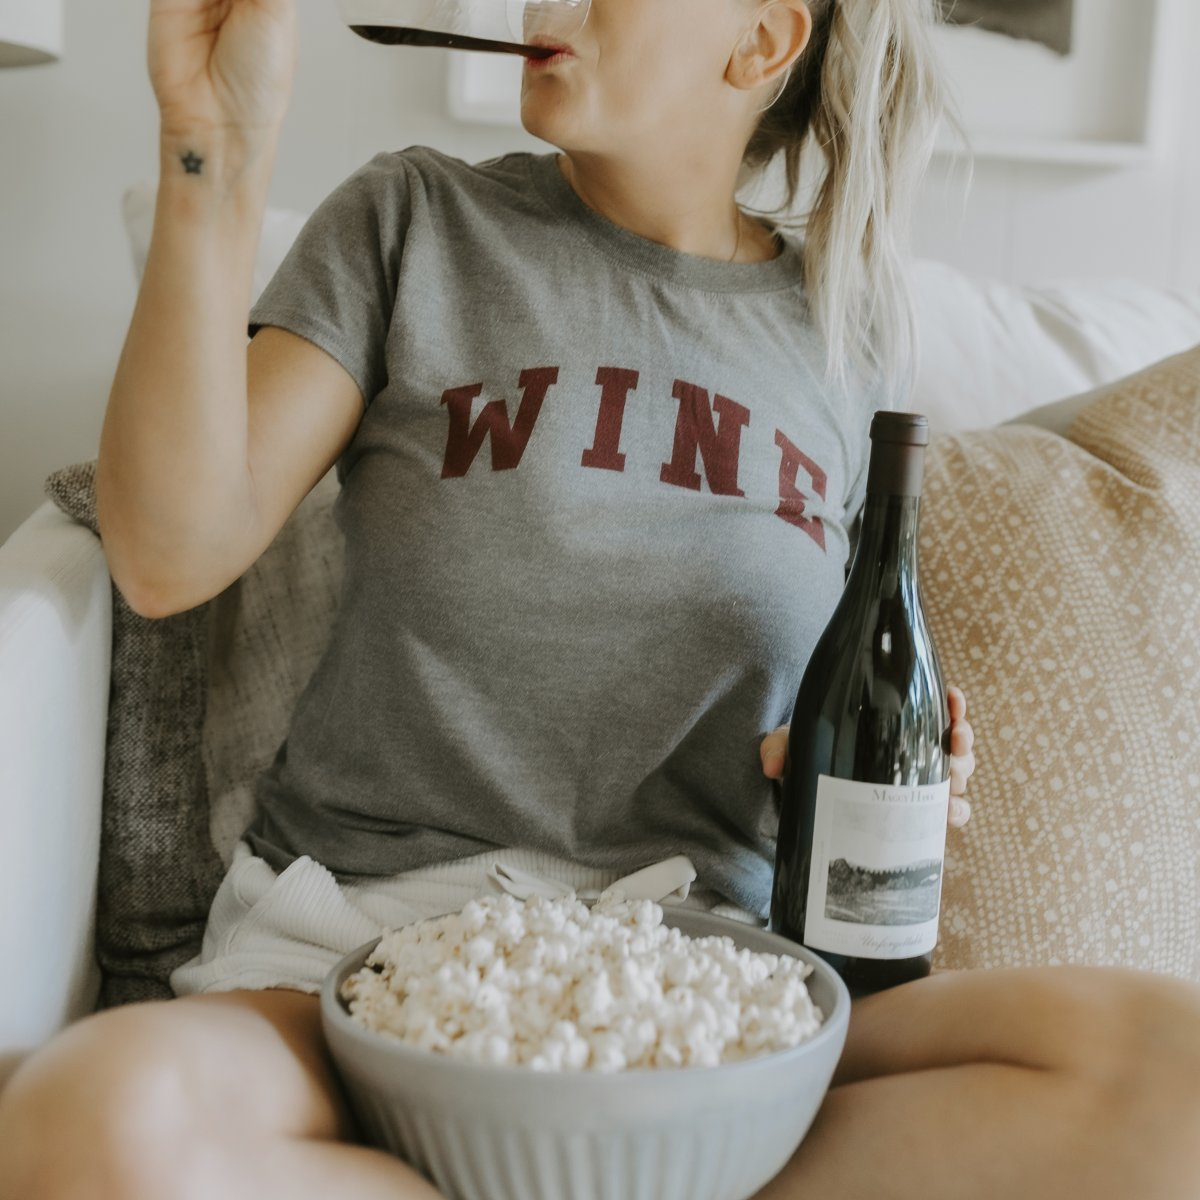 Woman Drinking a Glass of Wine with Popcorn in a Bowl in Front of Her